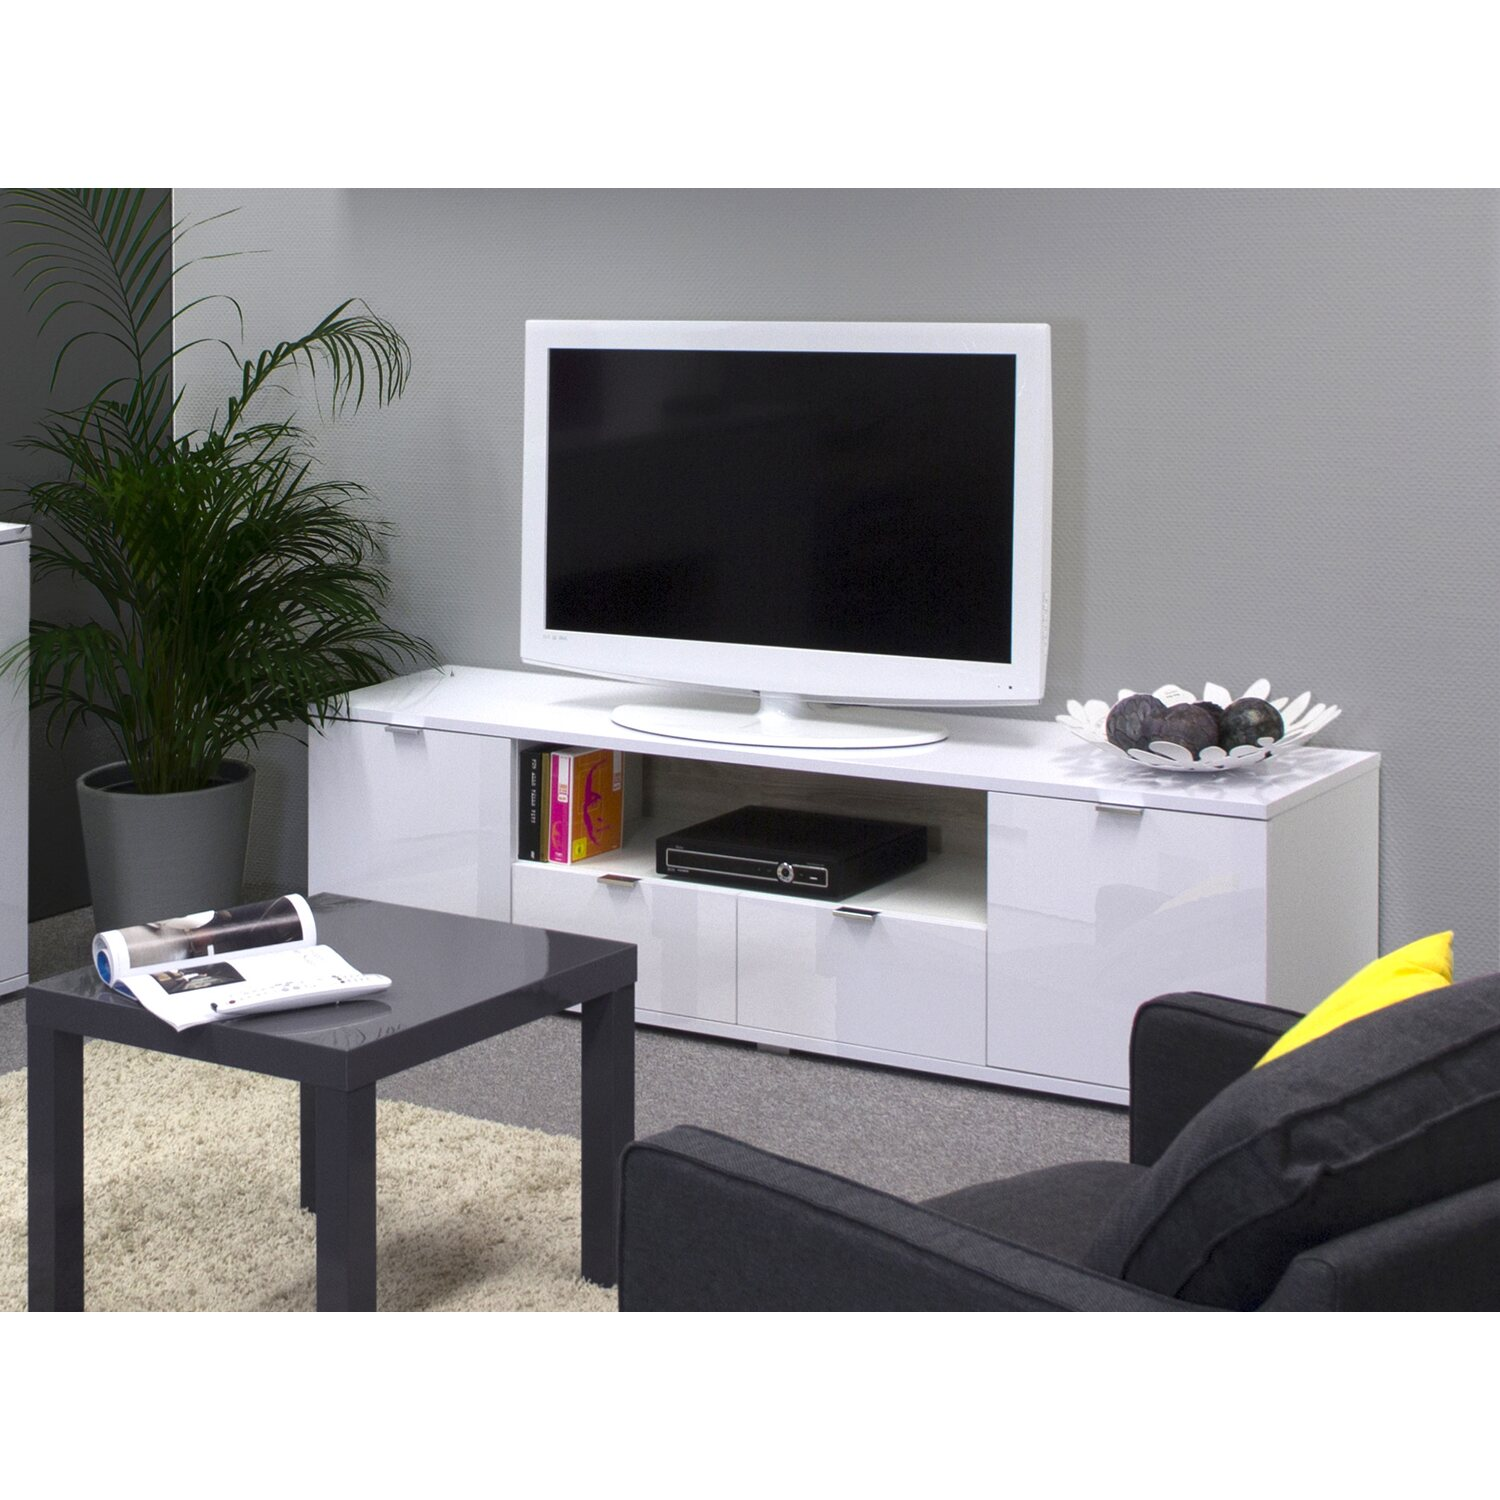 tv schrank online kaufen bei obi. Black Bedroom Furniture Sets. Home Design Ideas